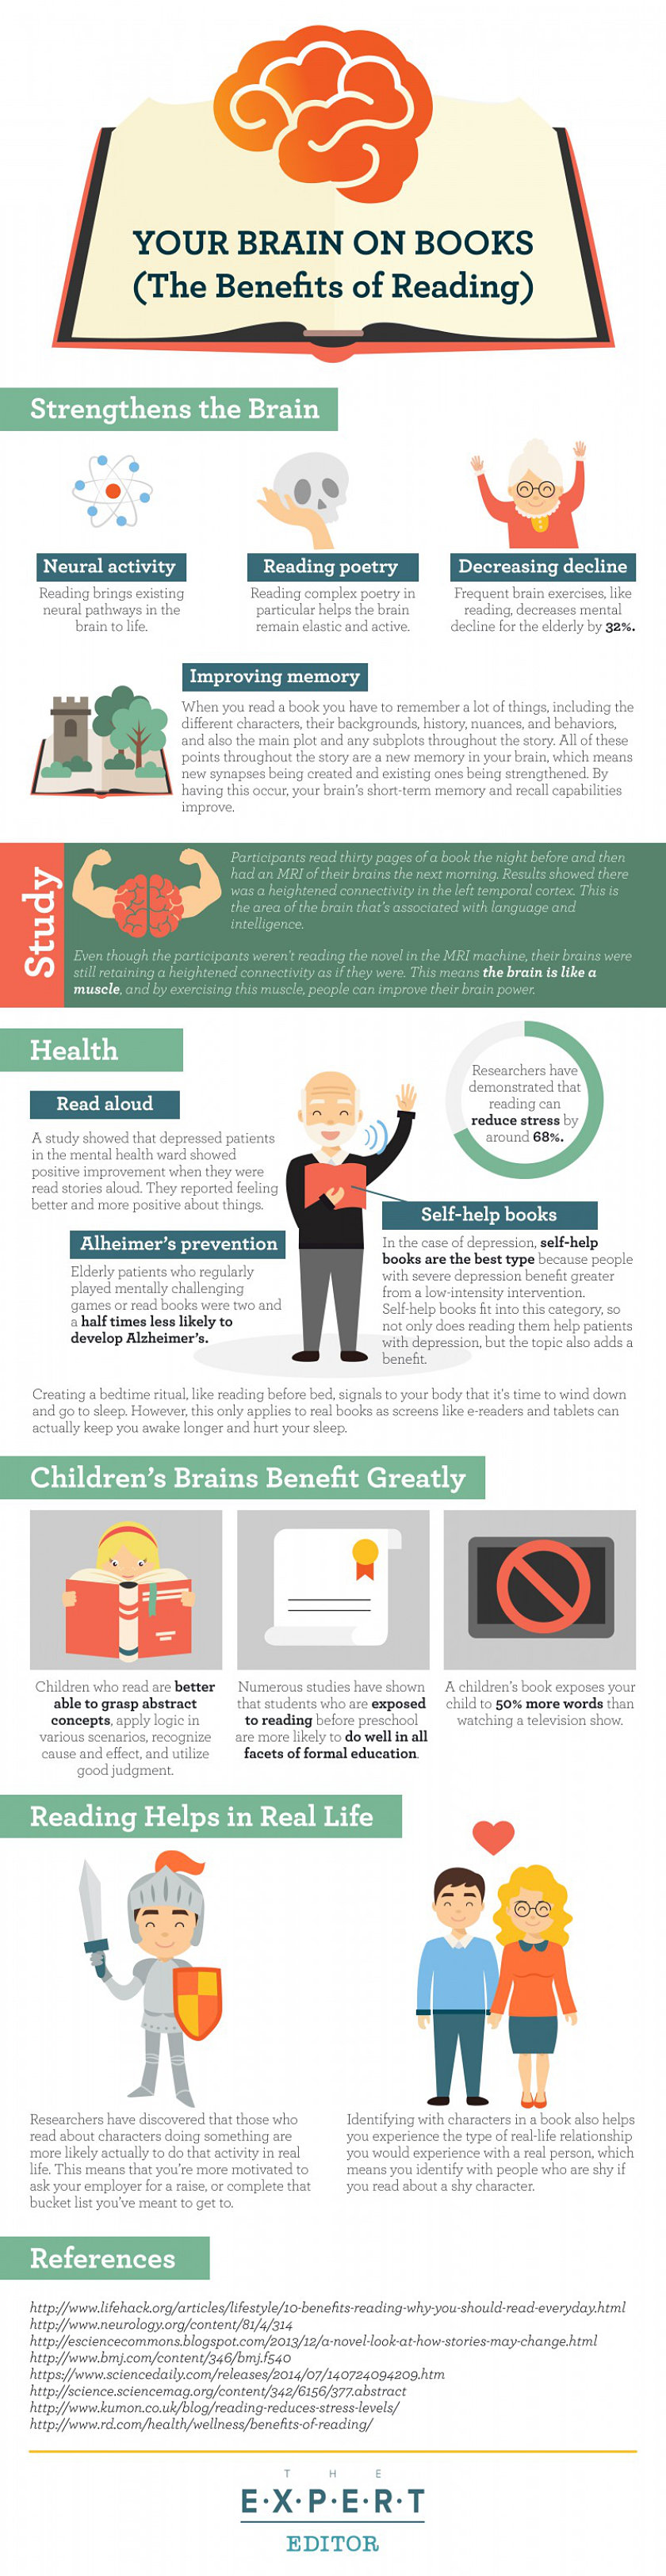 Your brain on books #infographic